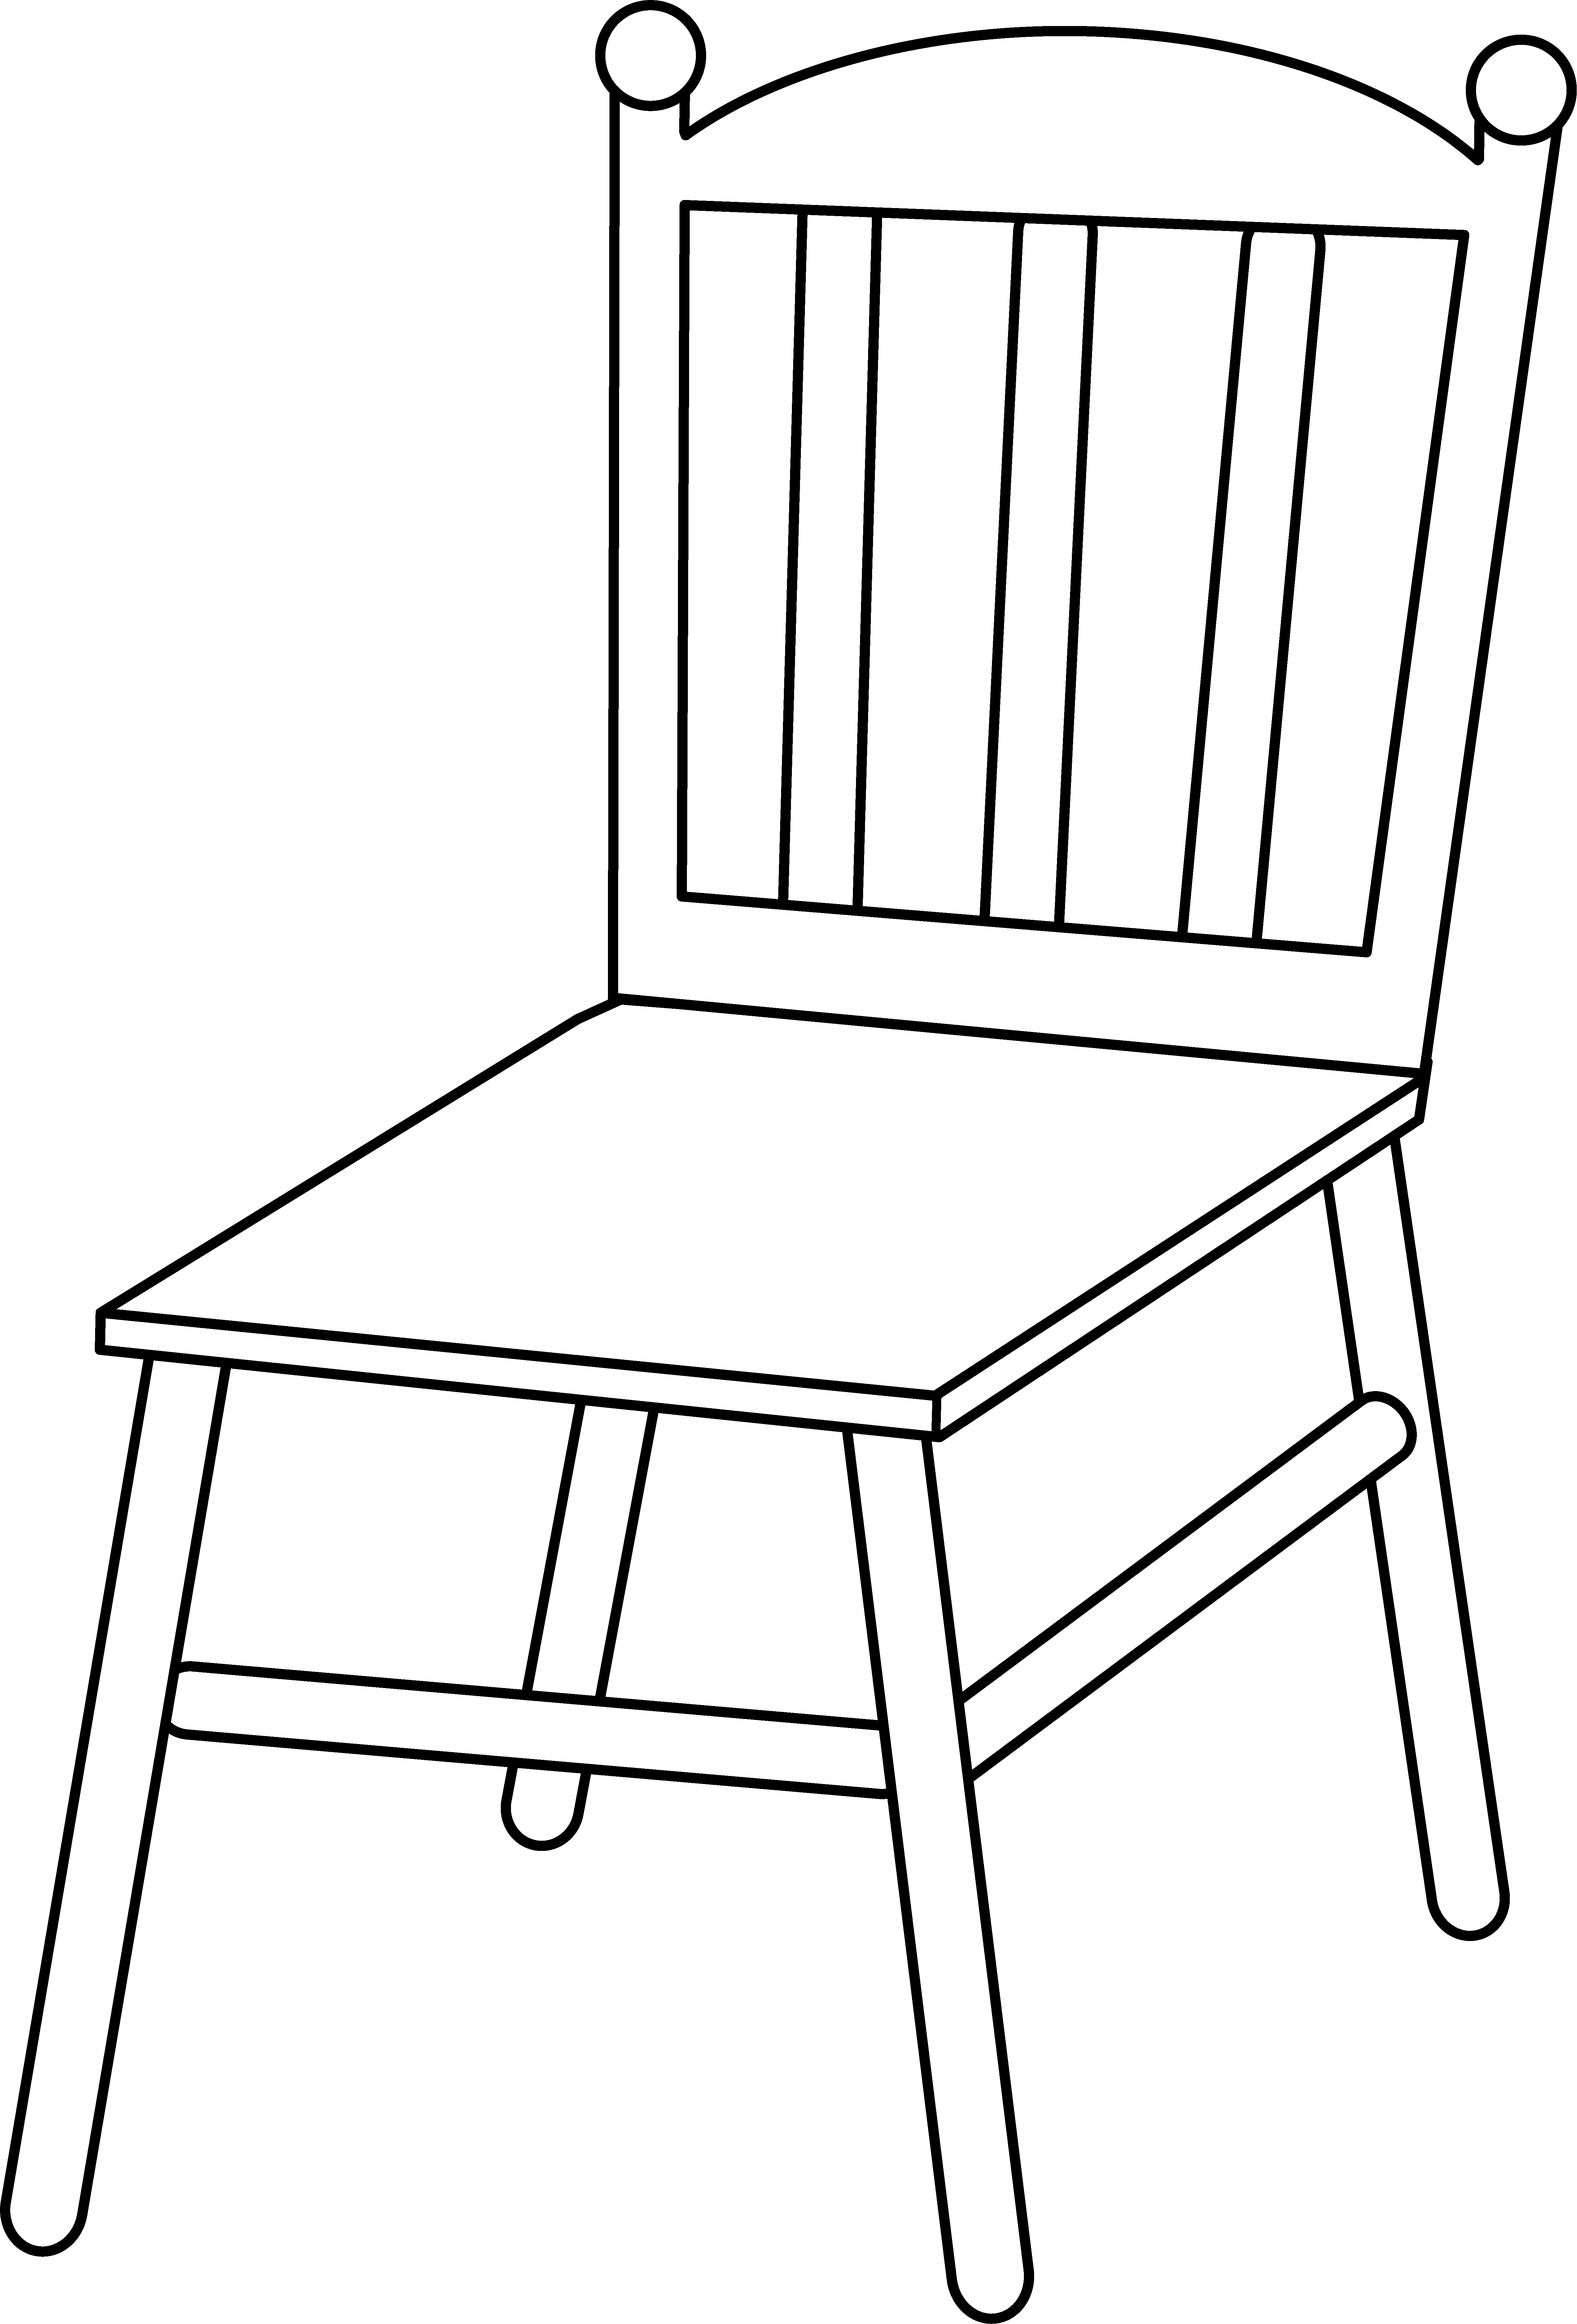 HD Chair Line Art - Transparent Background Chair Clipart Black And ... clipart freeuse library